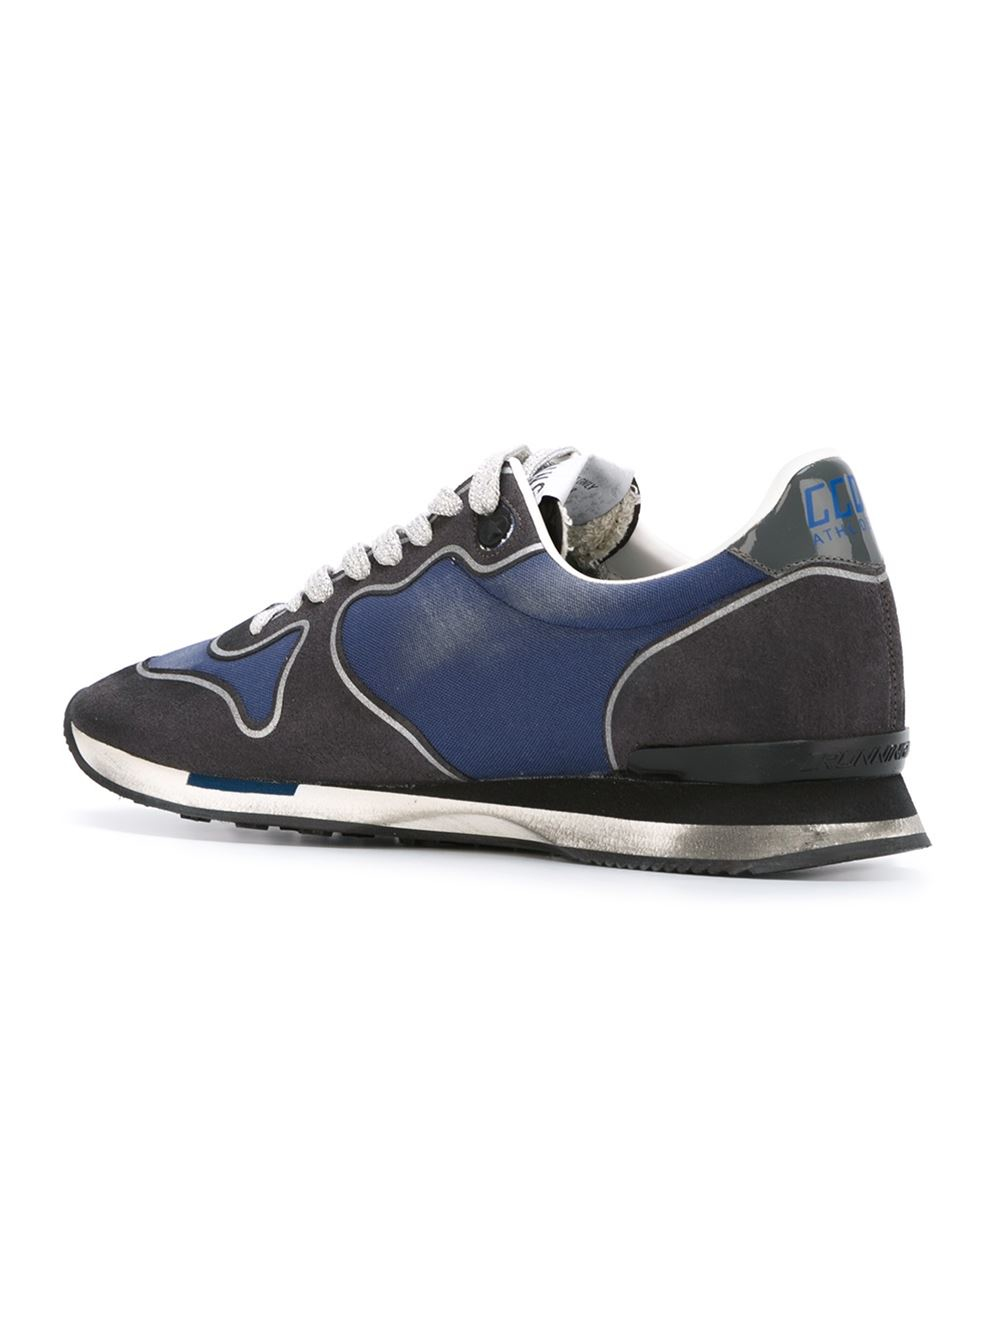 golden goose deluxe brand 39 running 39 sneakers in black for men blue lyst. Black Bedroom Furniture Sets. Home Design Ideas